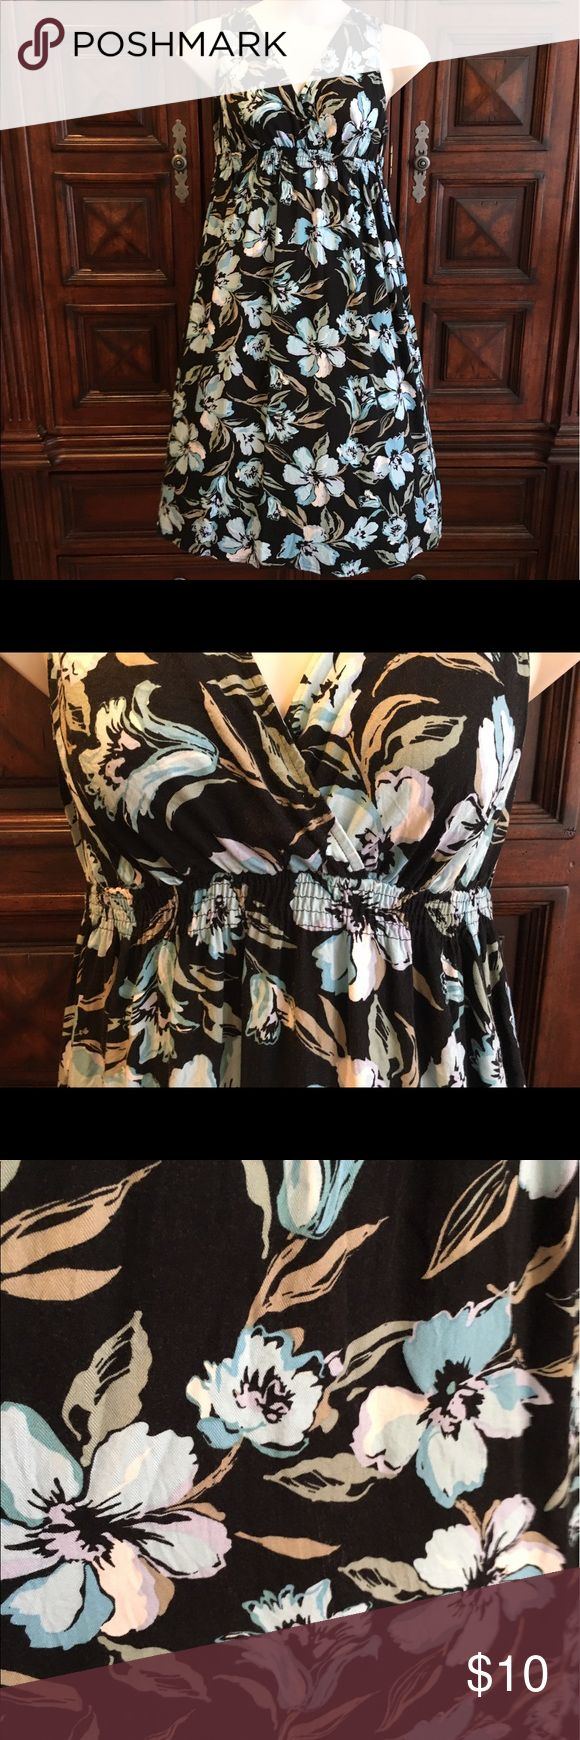 Hawaiian print dress Incredibly cute on! Got plenty of compliments when I wore this. Super comfy. It's a large but will fit 14/16 dress size. croft & barrow Dresses Asymmetrical